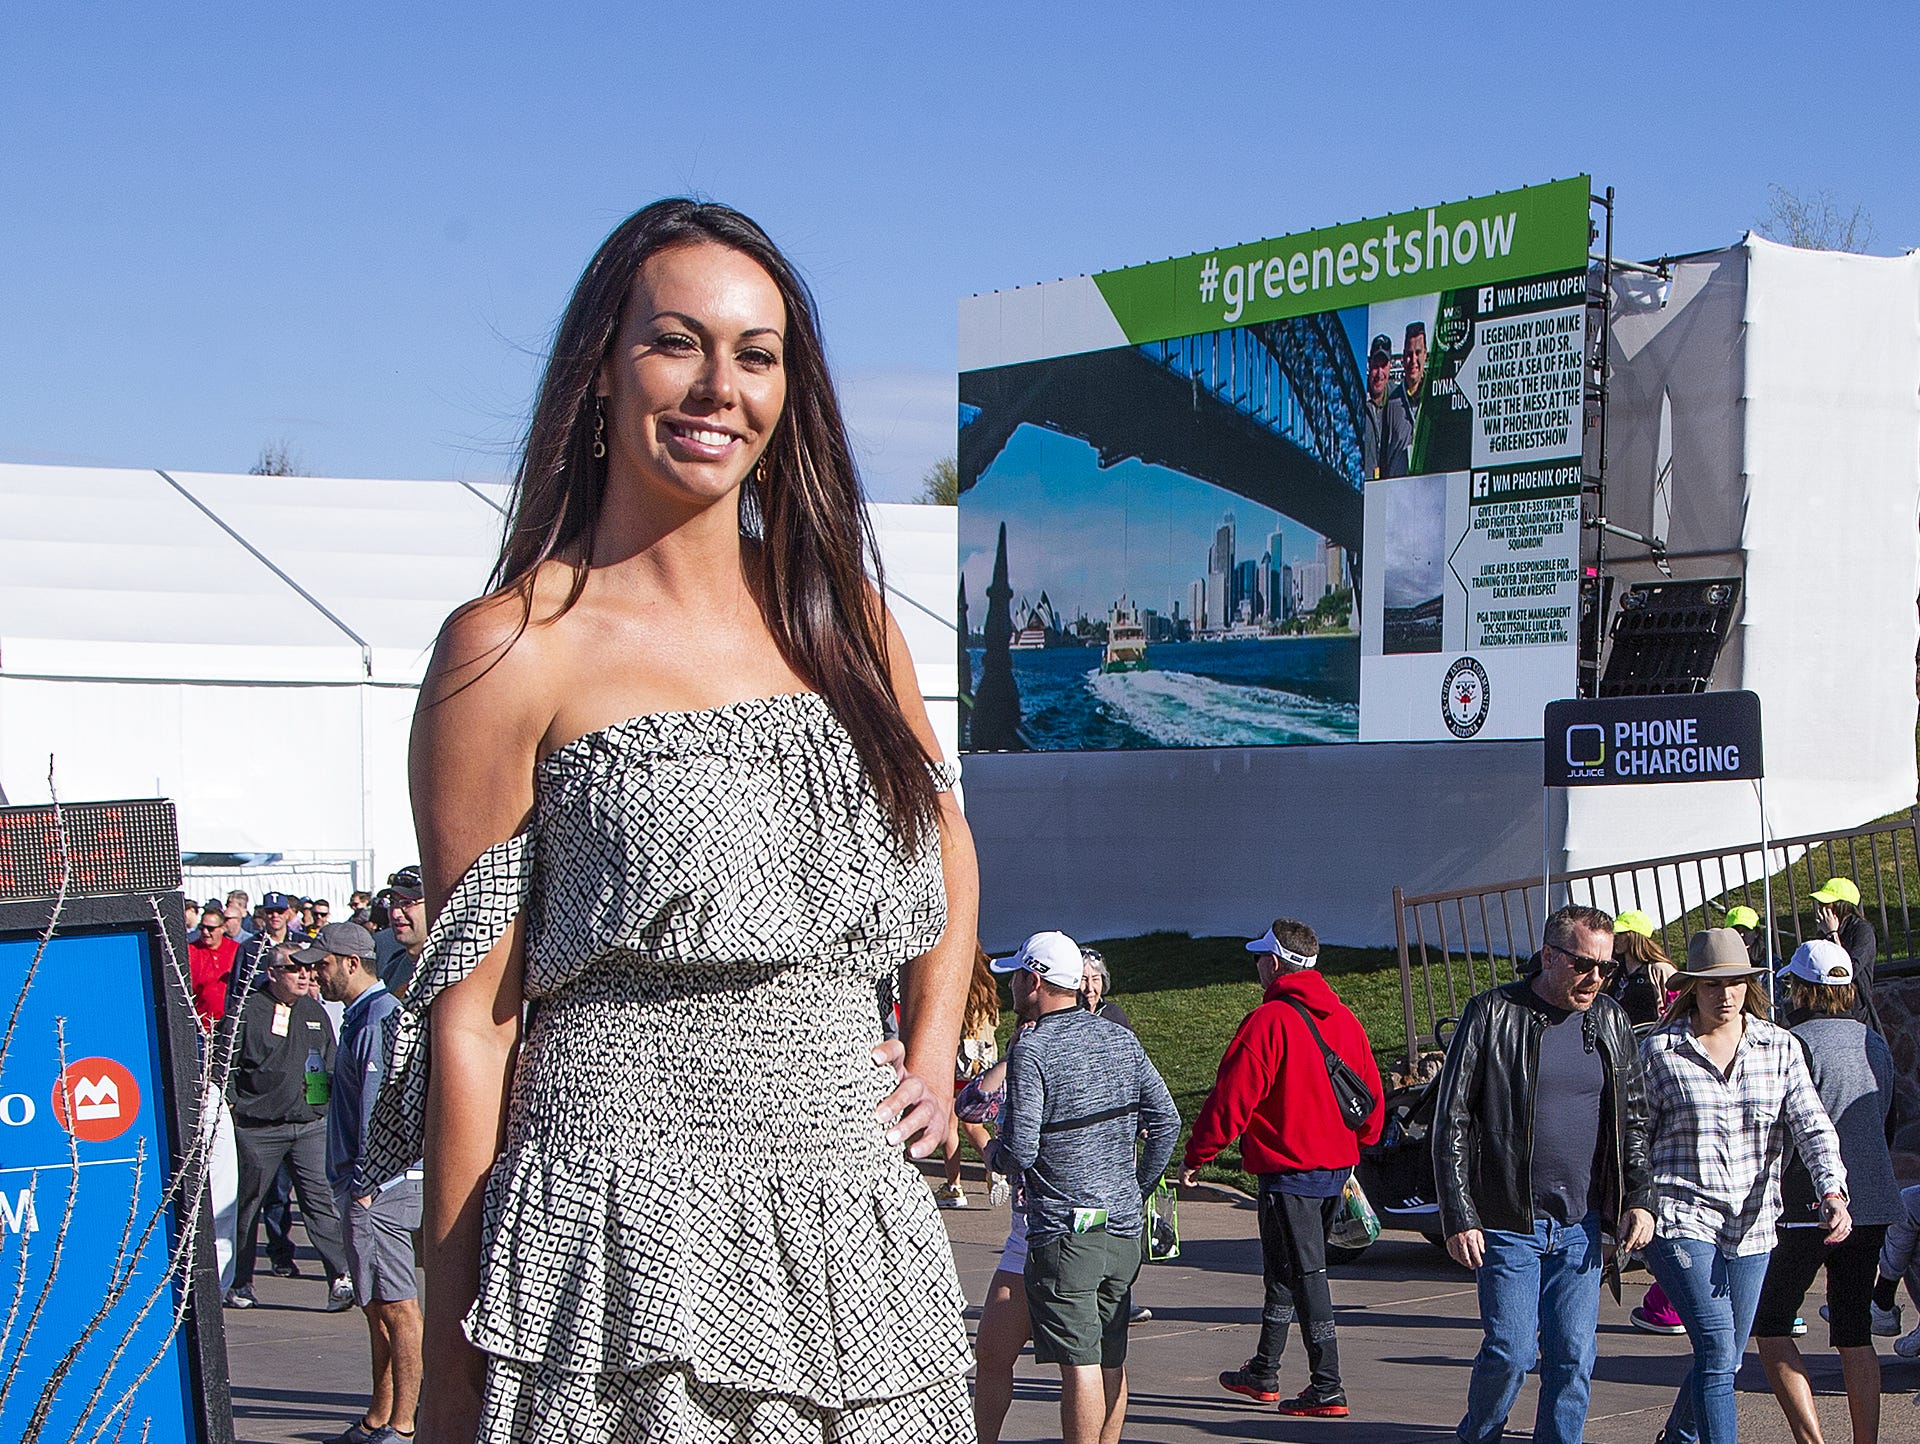 Jamie Wray, 35, Scottsdale, dressed fine for the second round of the Waste Management Phoenix Open at the TPC Scottsdale, Friday, February 1, 2019.